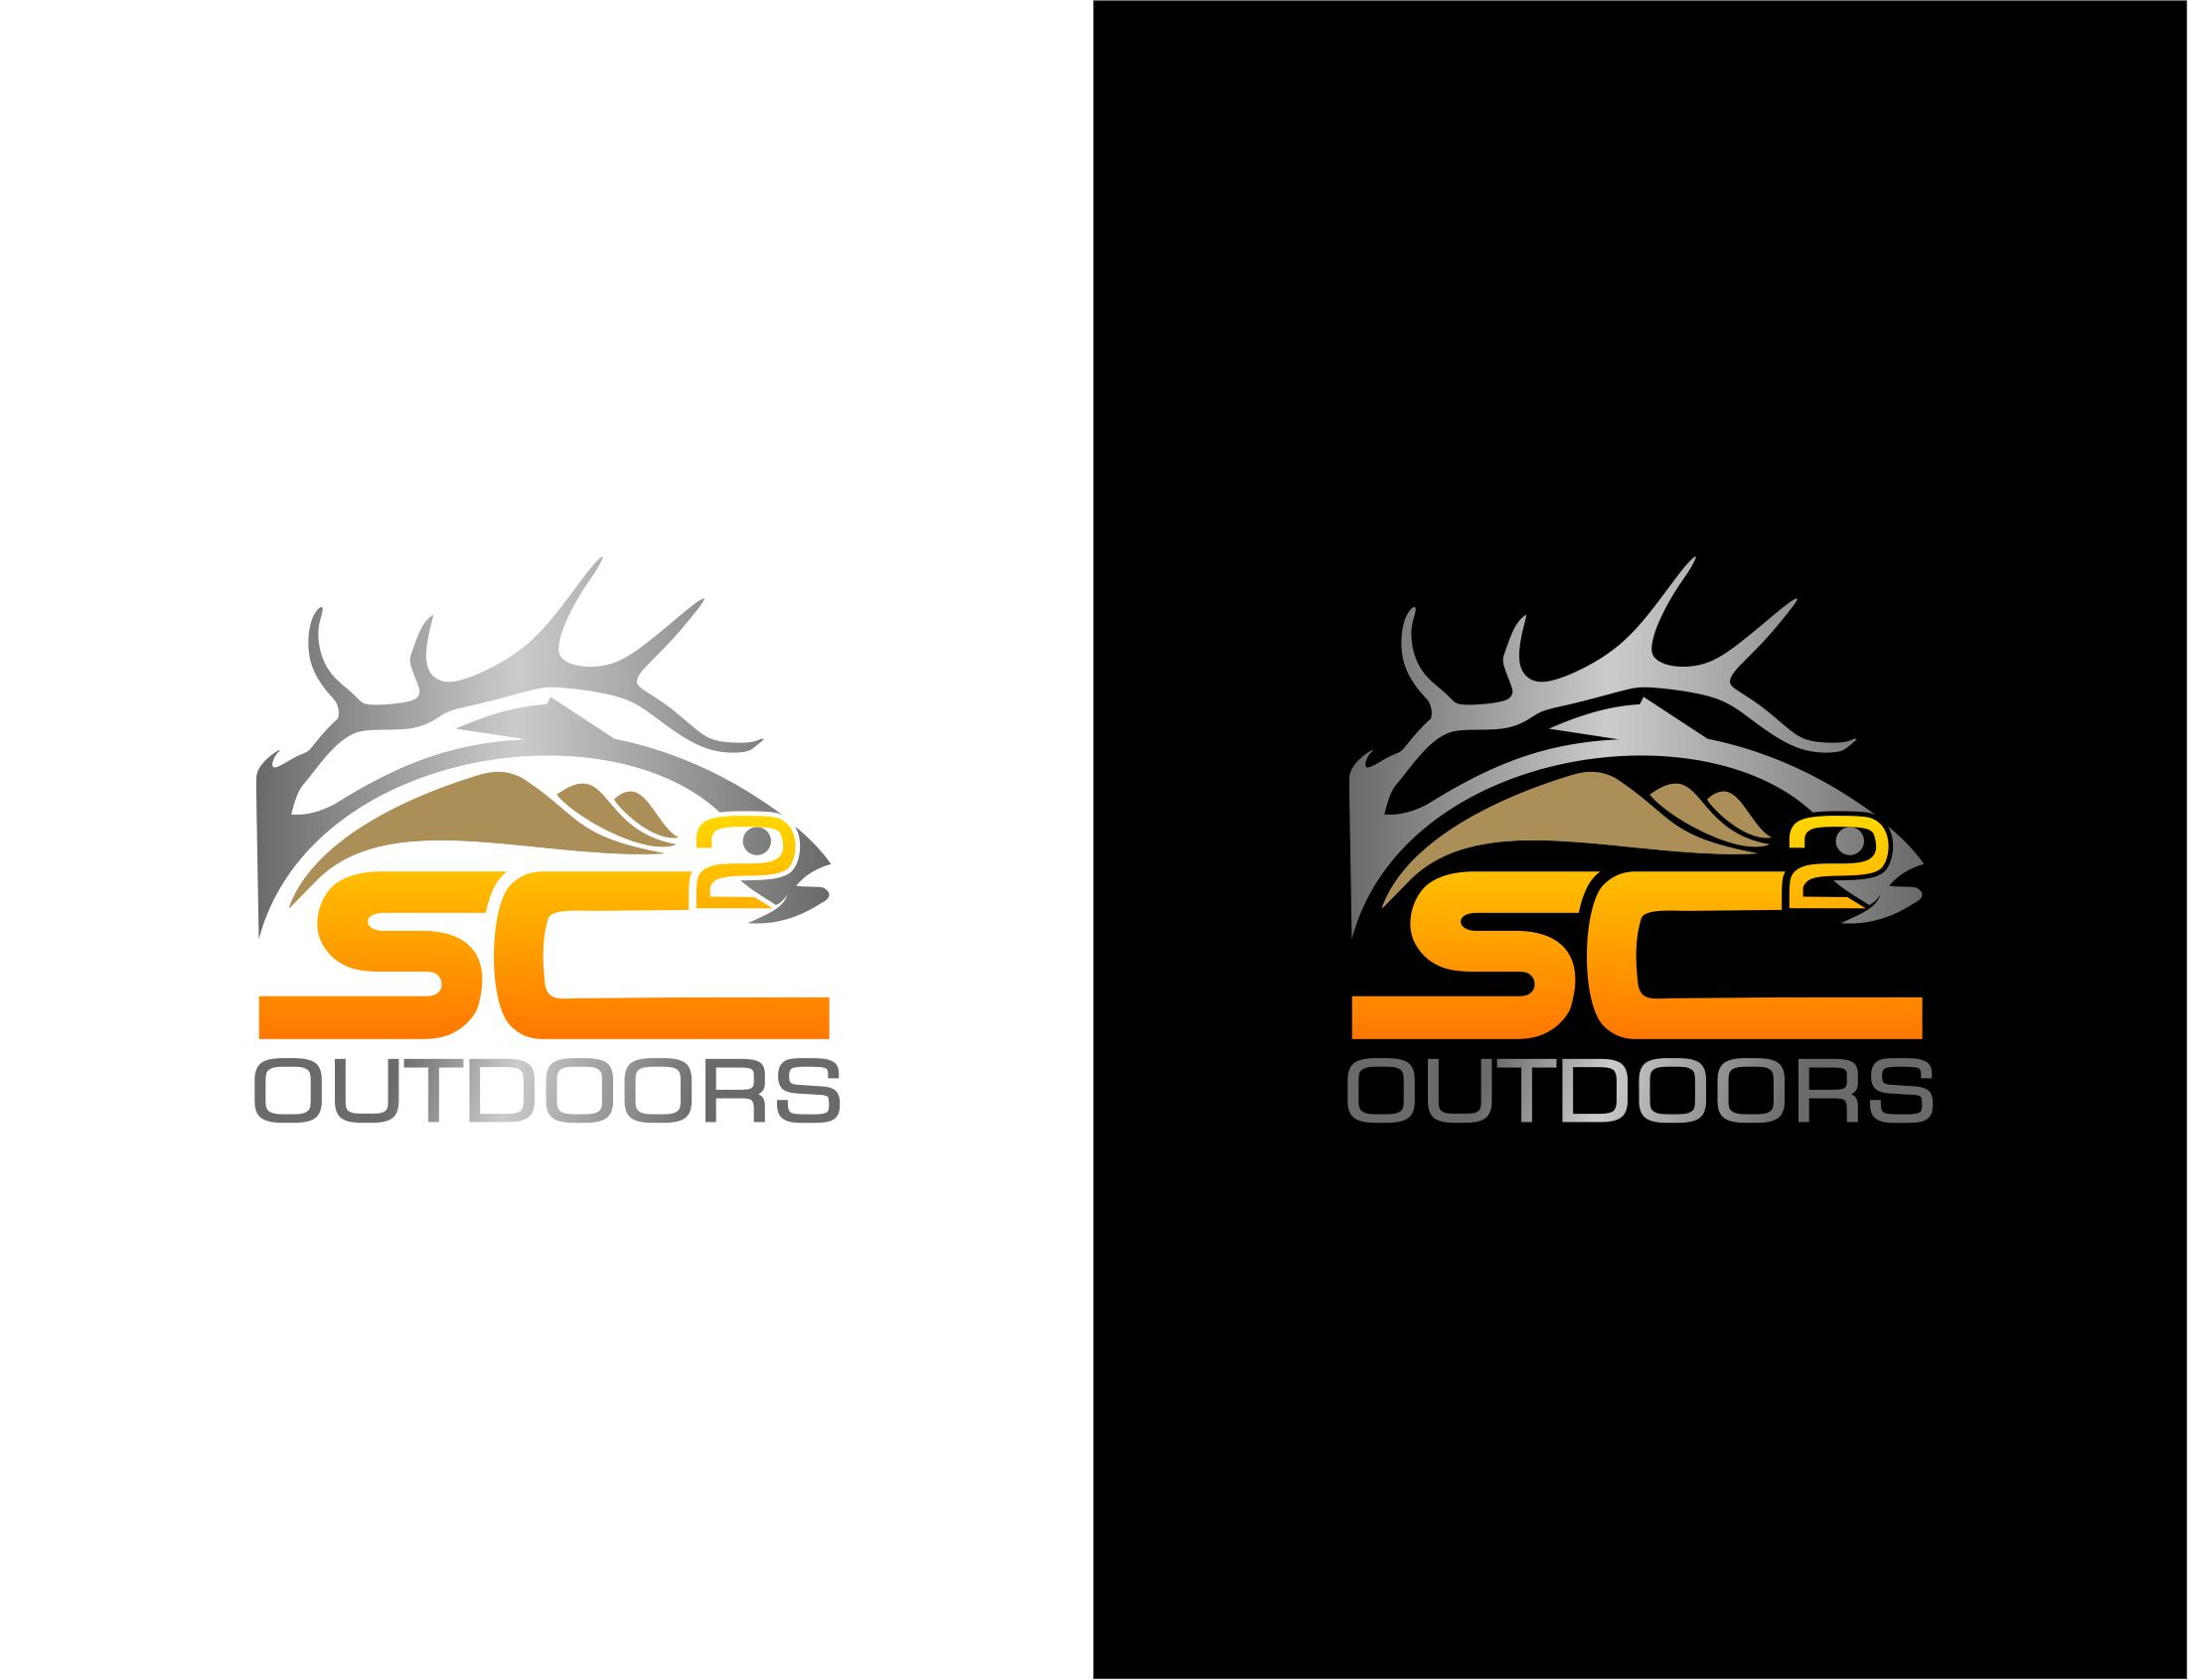 Logo Design by Raymond Garcia - Entry No. 187 in the Logo Design Contest Imaginative Logo Design for SC2 Outdoors Hunting / Fishing Logo.